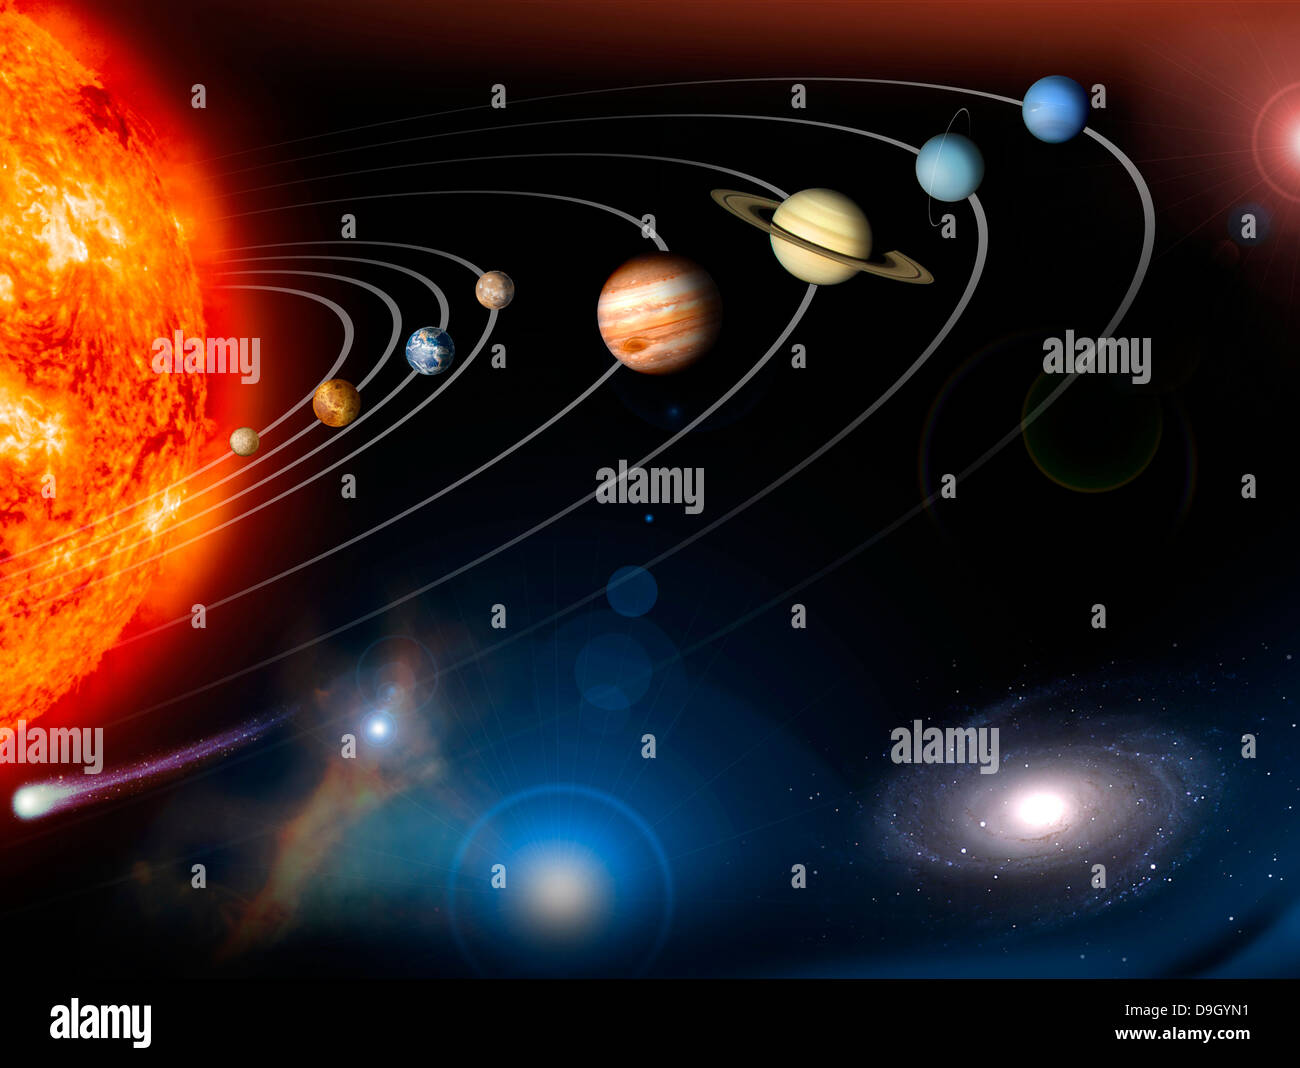 Digitally generated image of our solar system and points beyond. - Stock Image